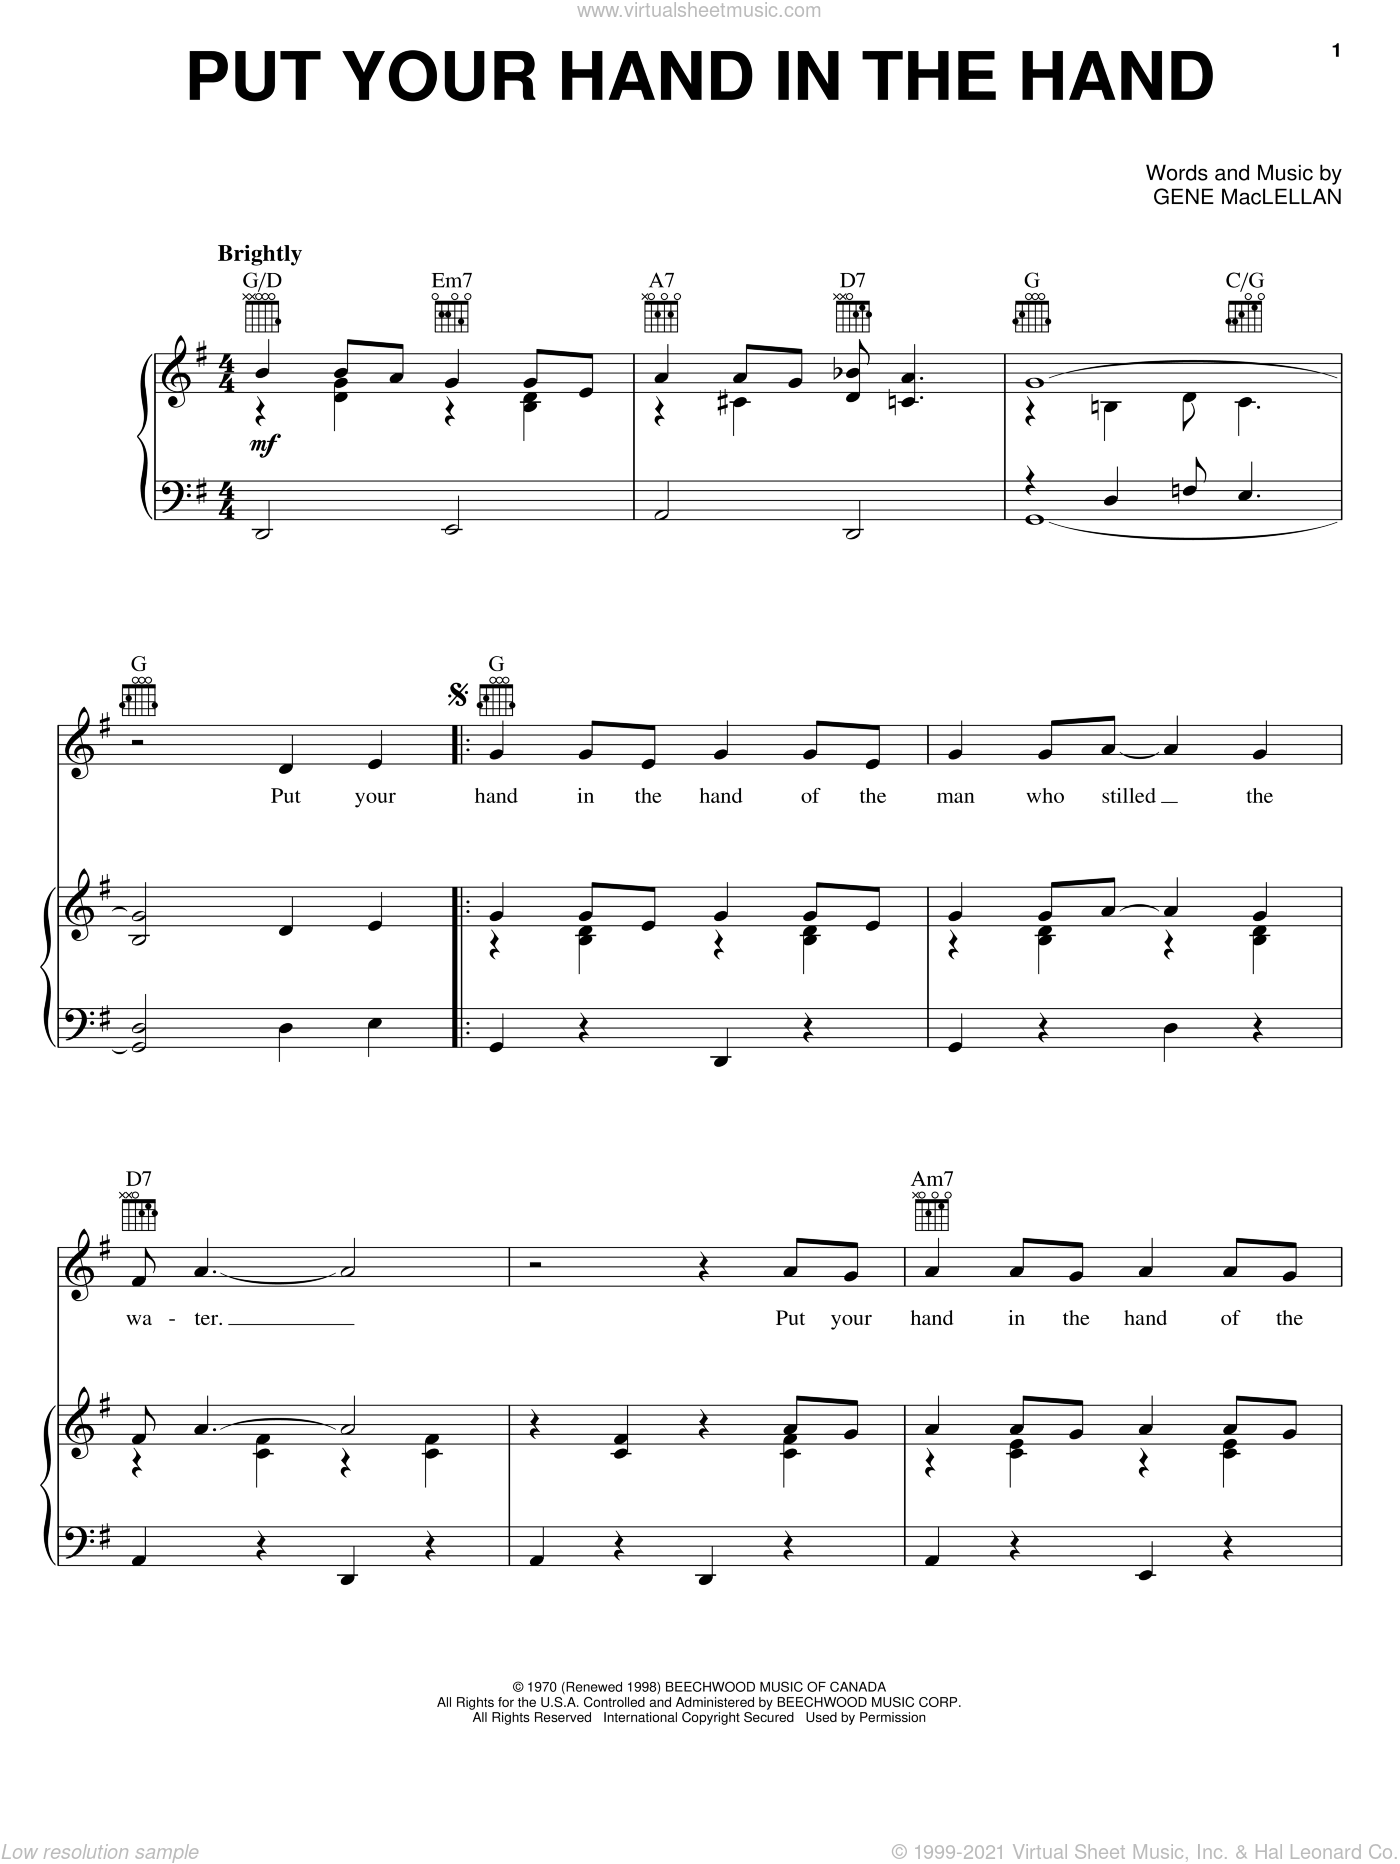 Put Your Hand In The Hand sheet music for voice, piano or guitar by MacLellan and Ocean, Anne Murray and Gene MacLellan, intermediate skill level